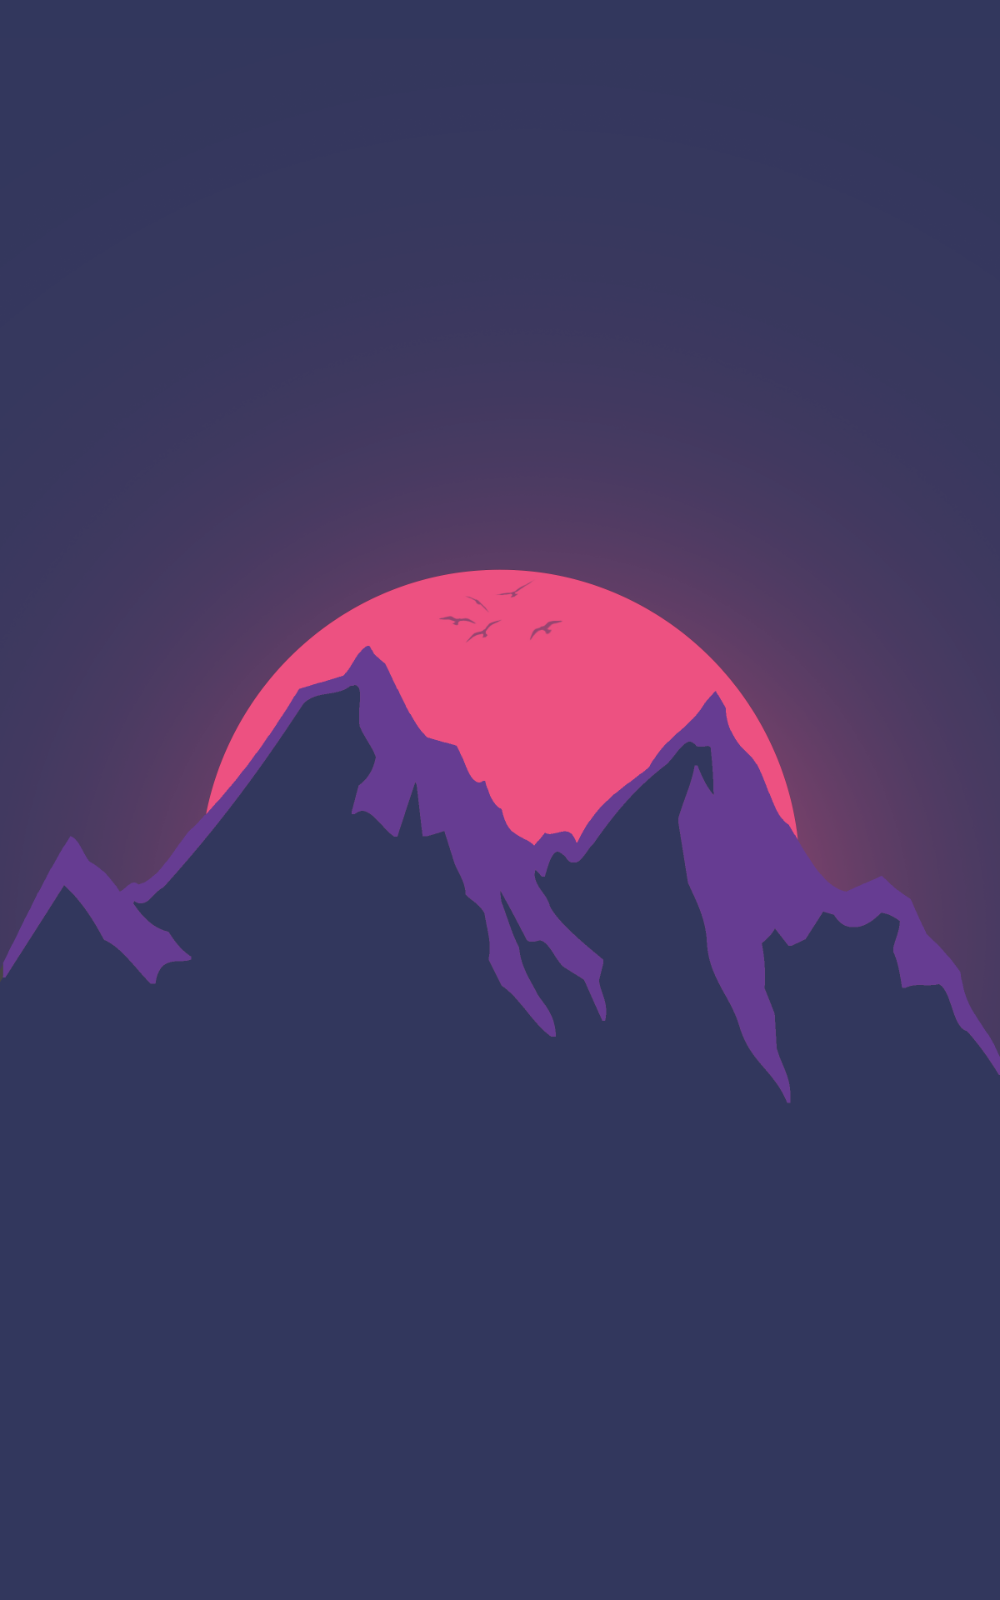 Mkbhd Wallpaper in 2020 (With images) Mkbhd wallpapers